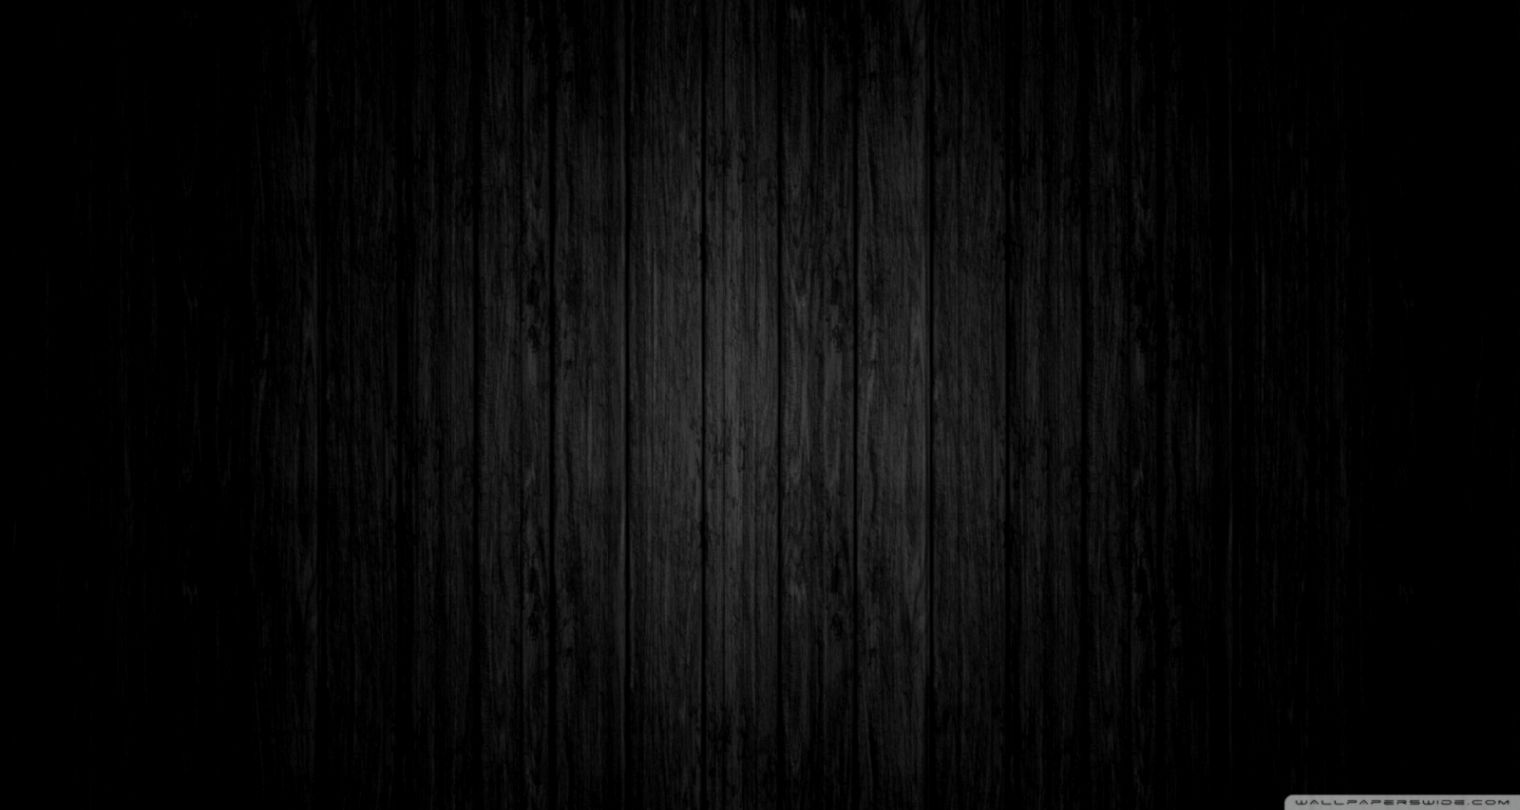 Wood Wallpaper Hd | HD Wallpapers